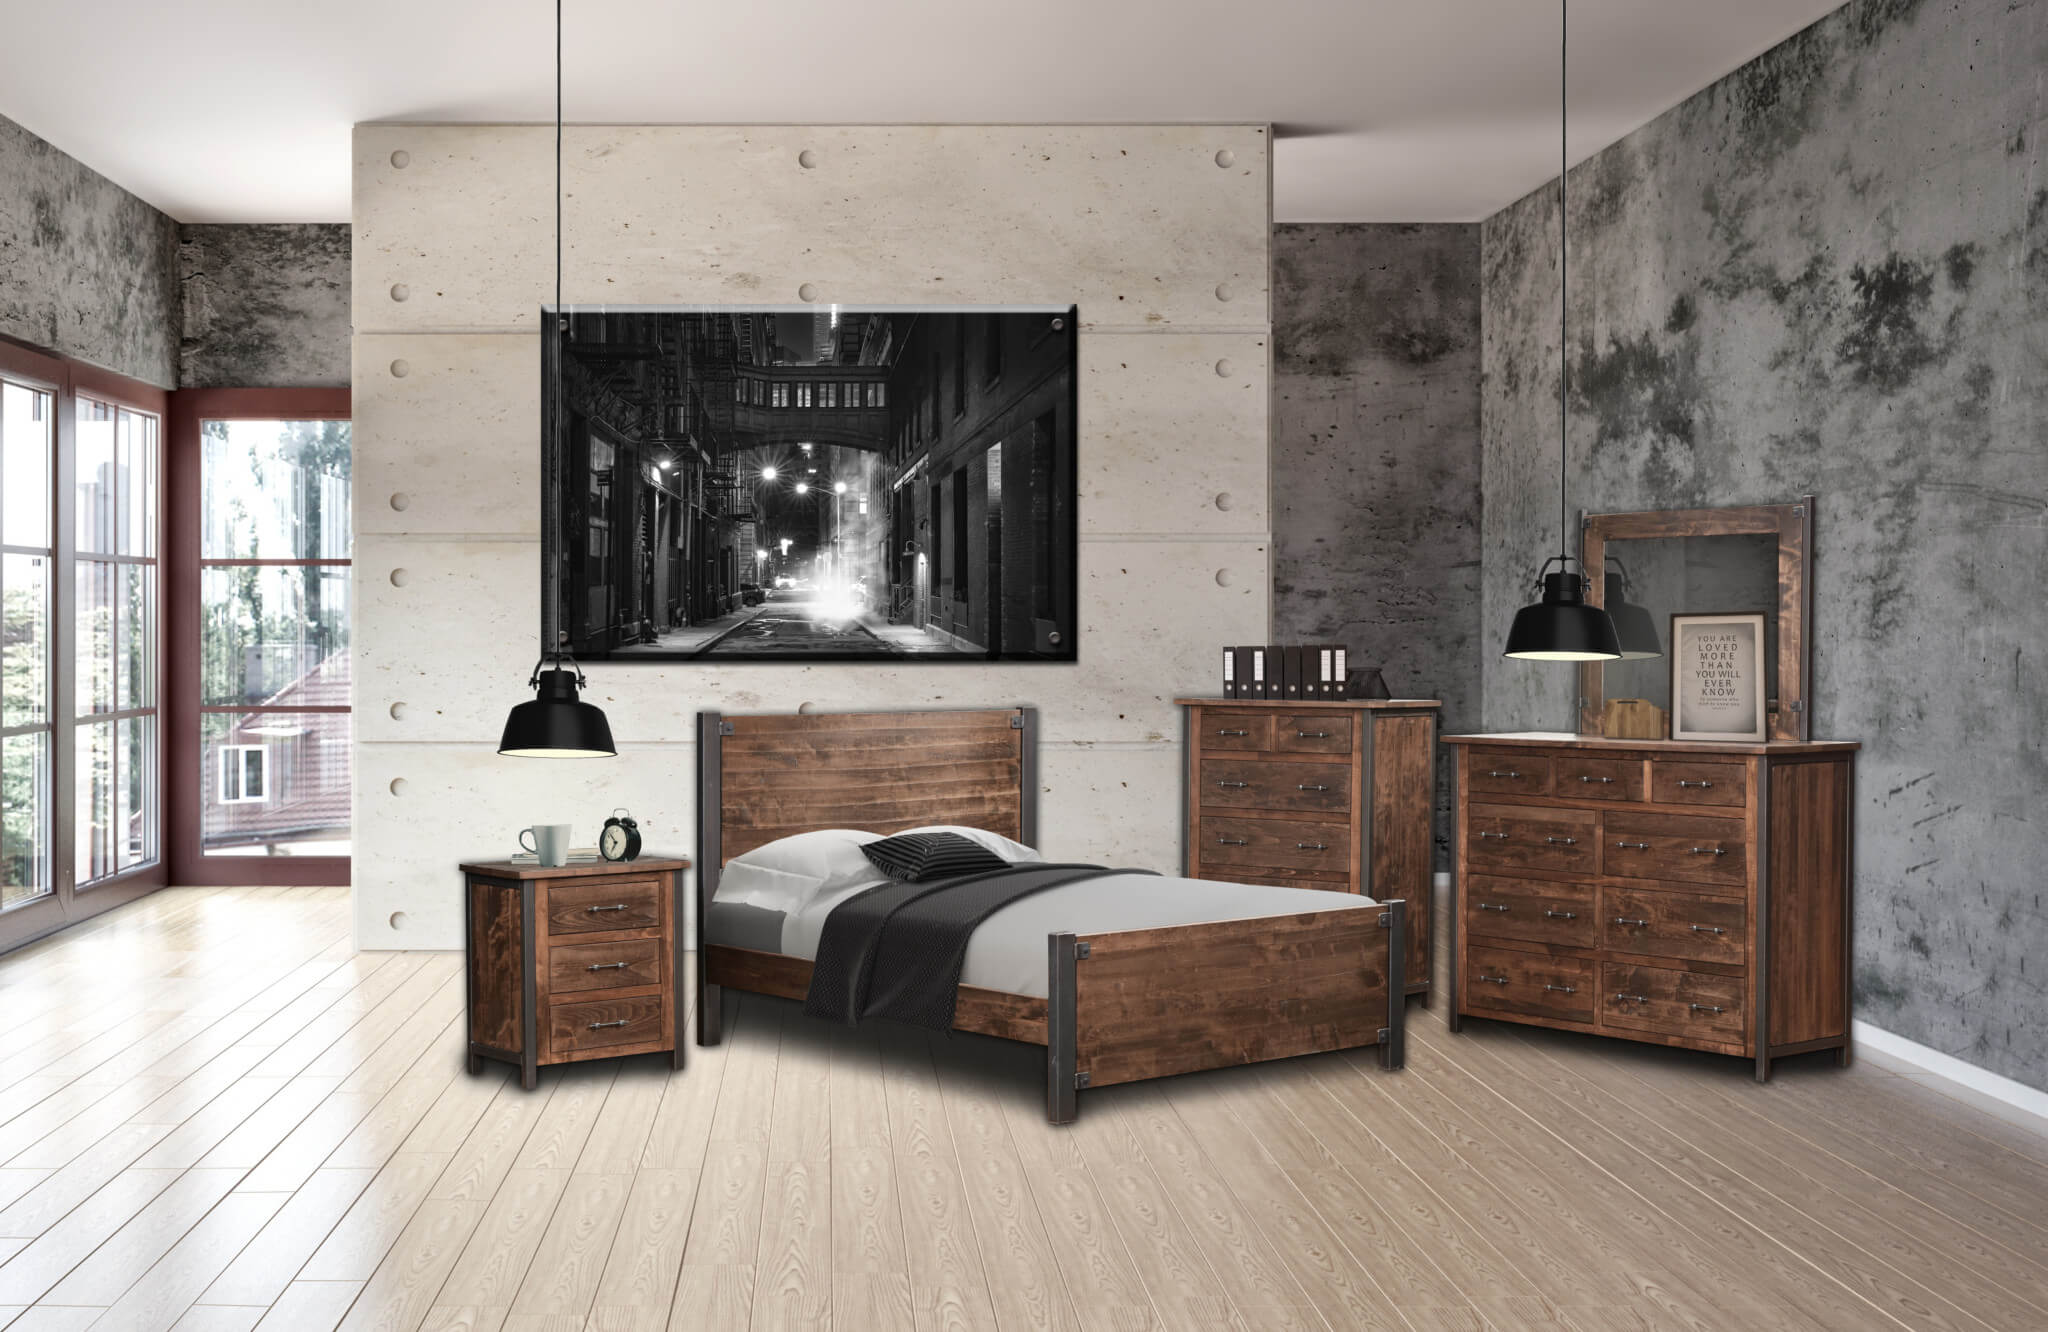 structura II bedroom furniture collection